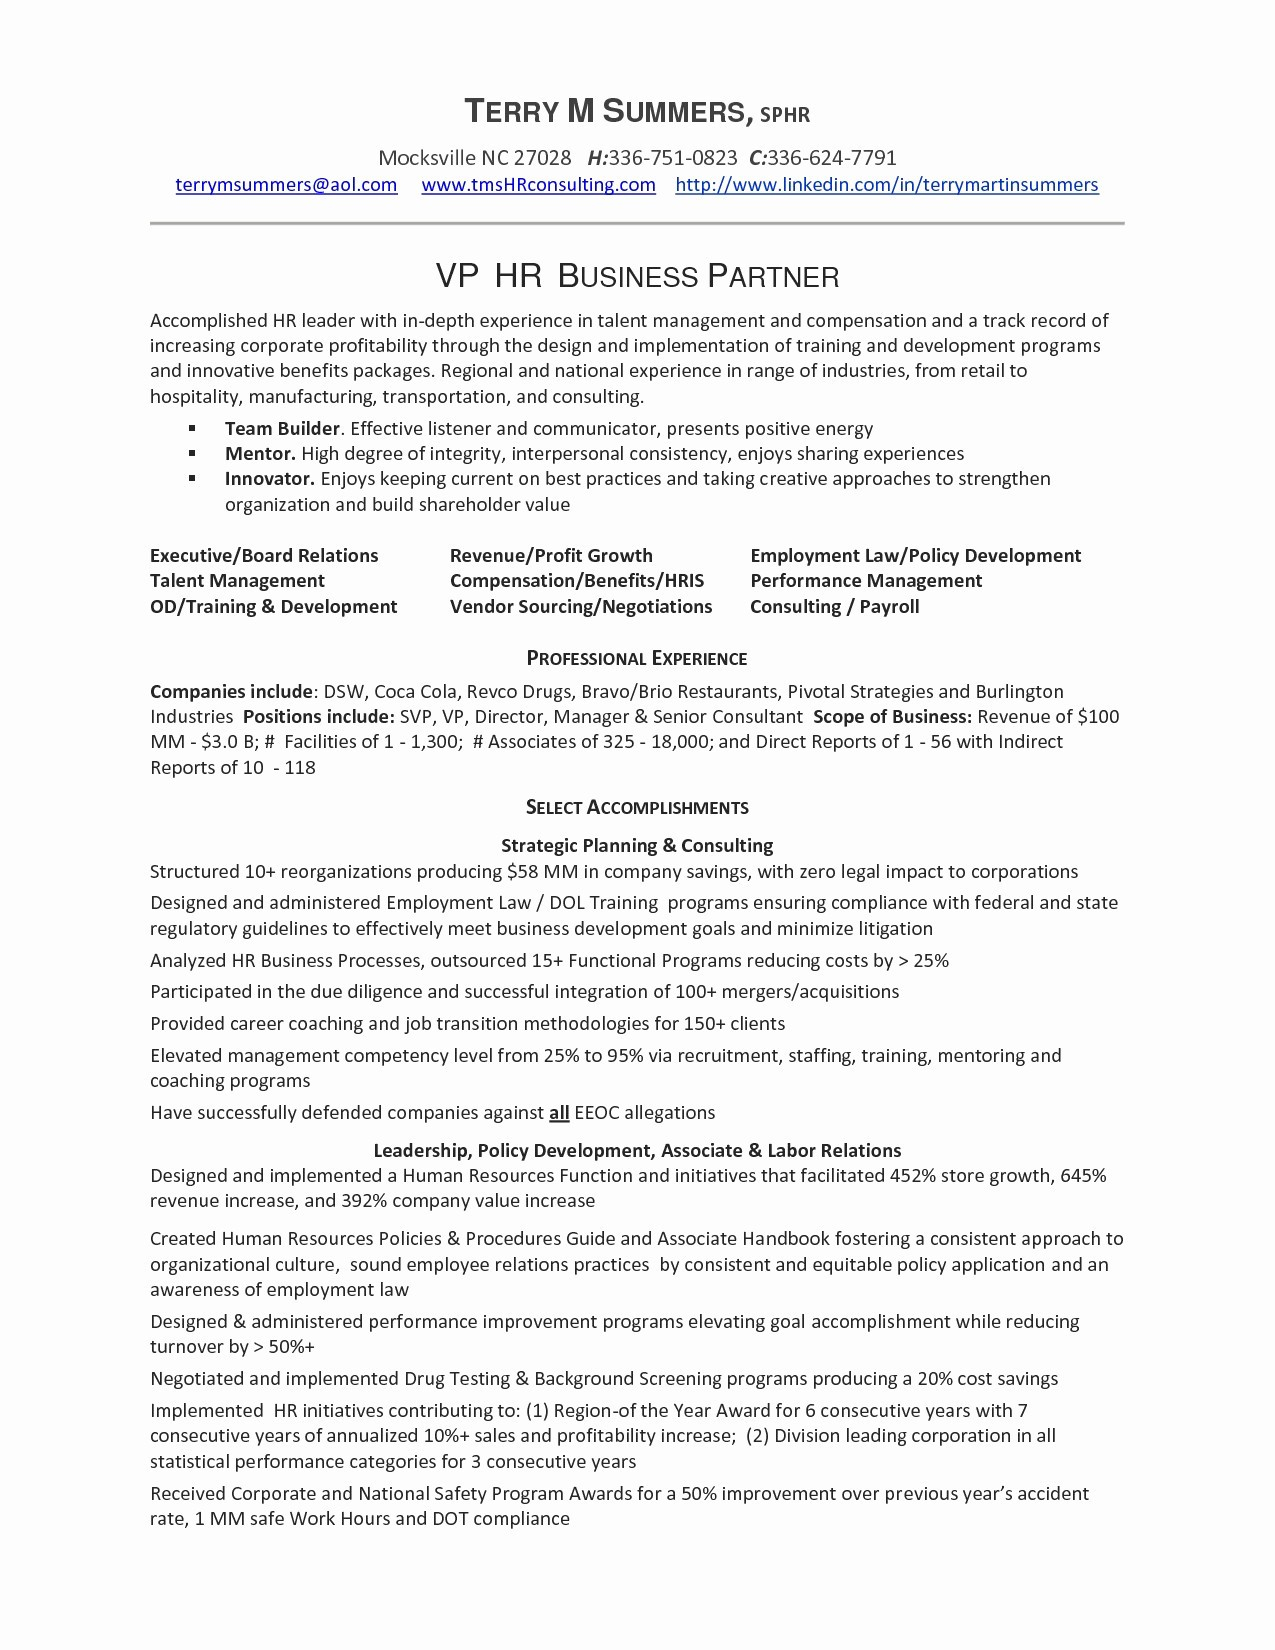 Relocation Cover Letter Template - Sample Cover Letter for A Relocation Job Best Awesome Business